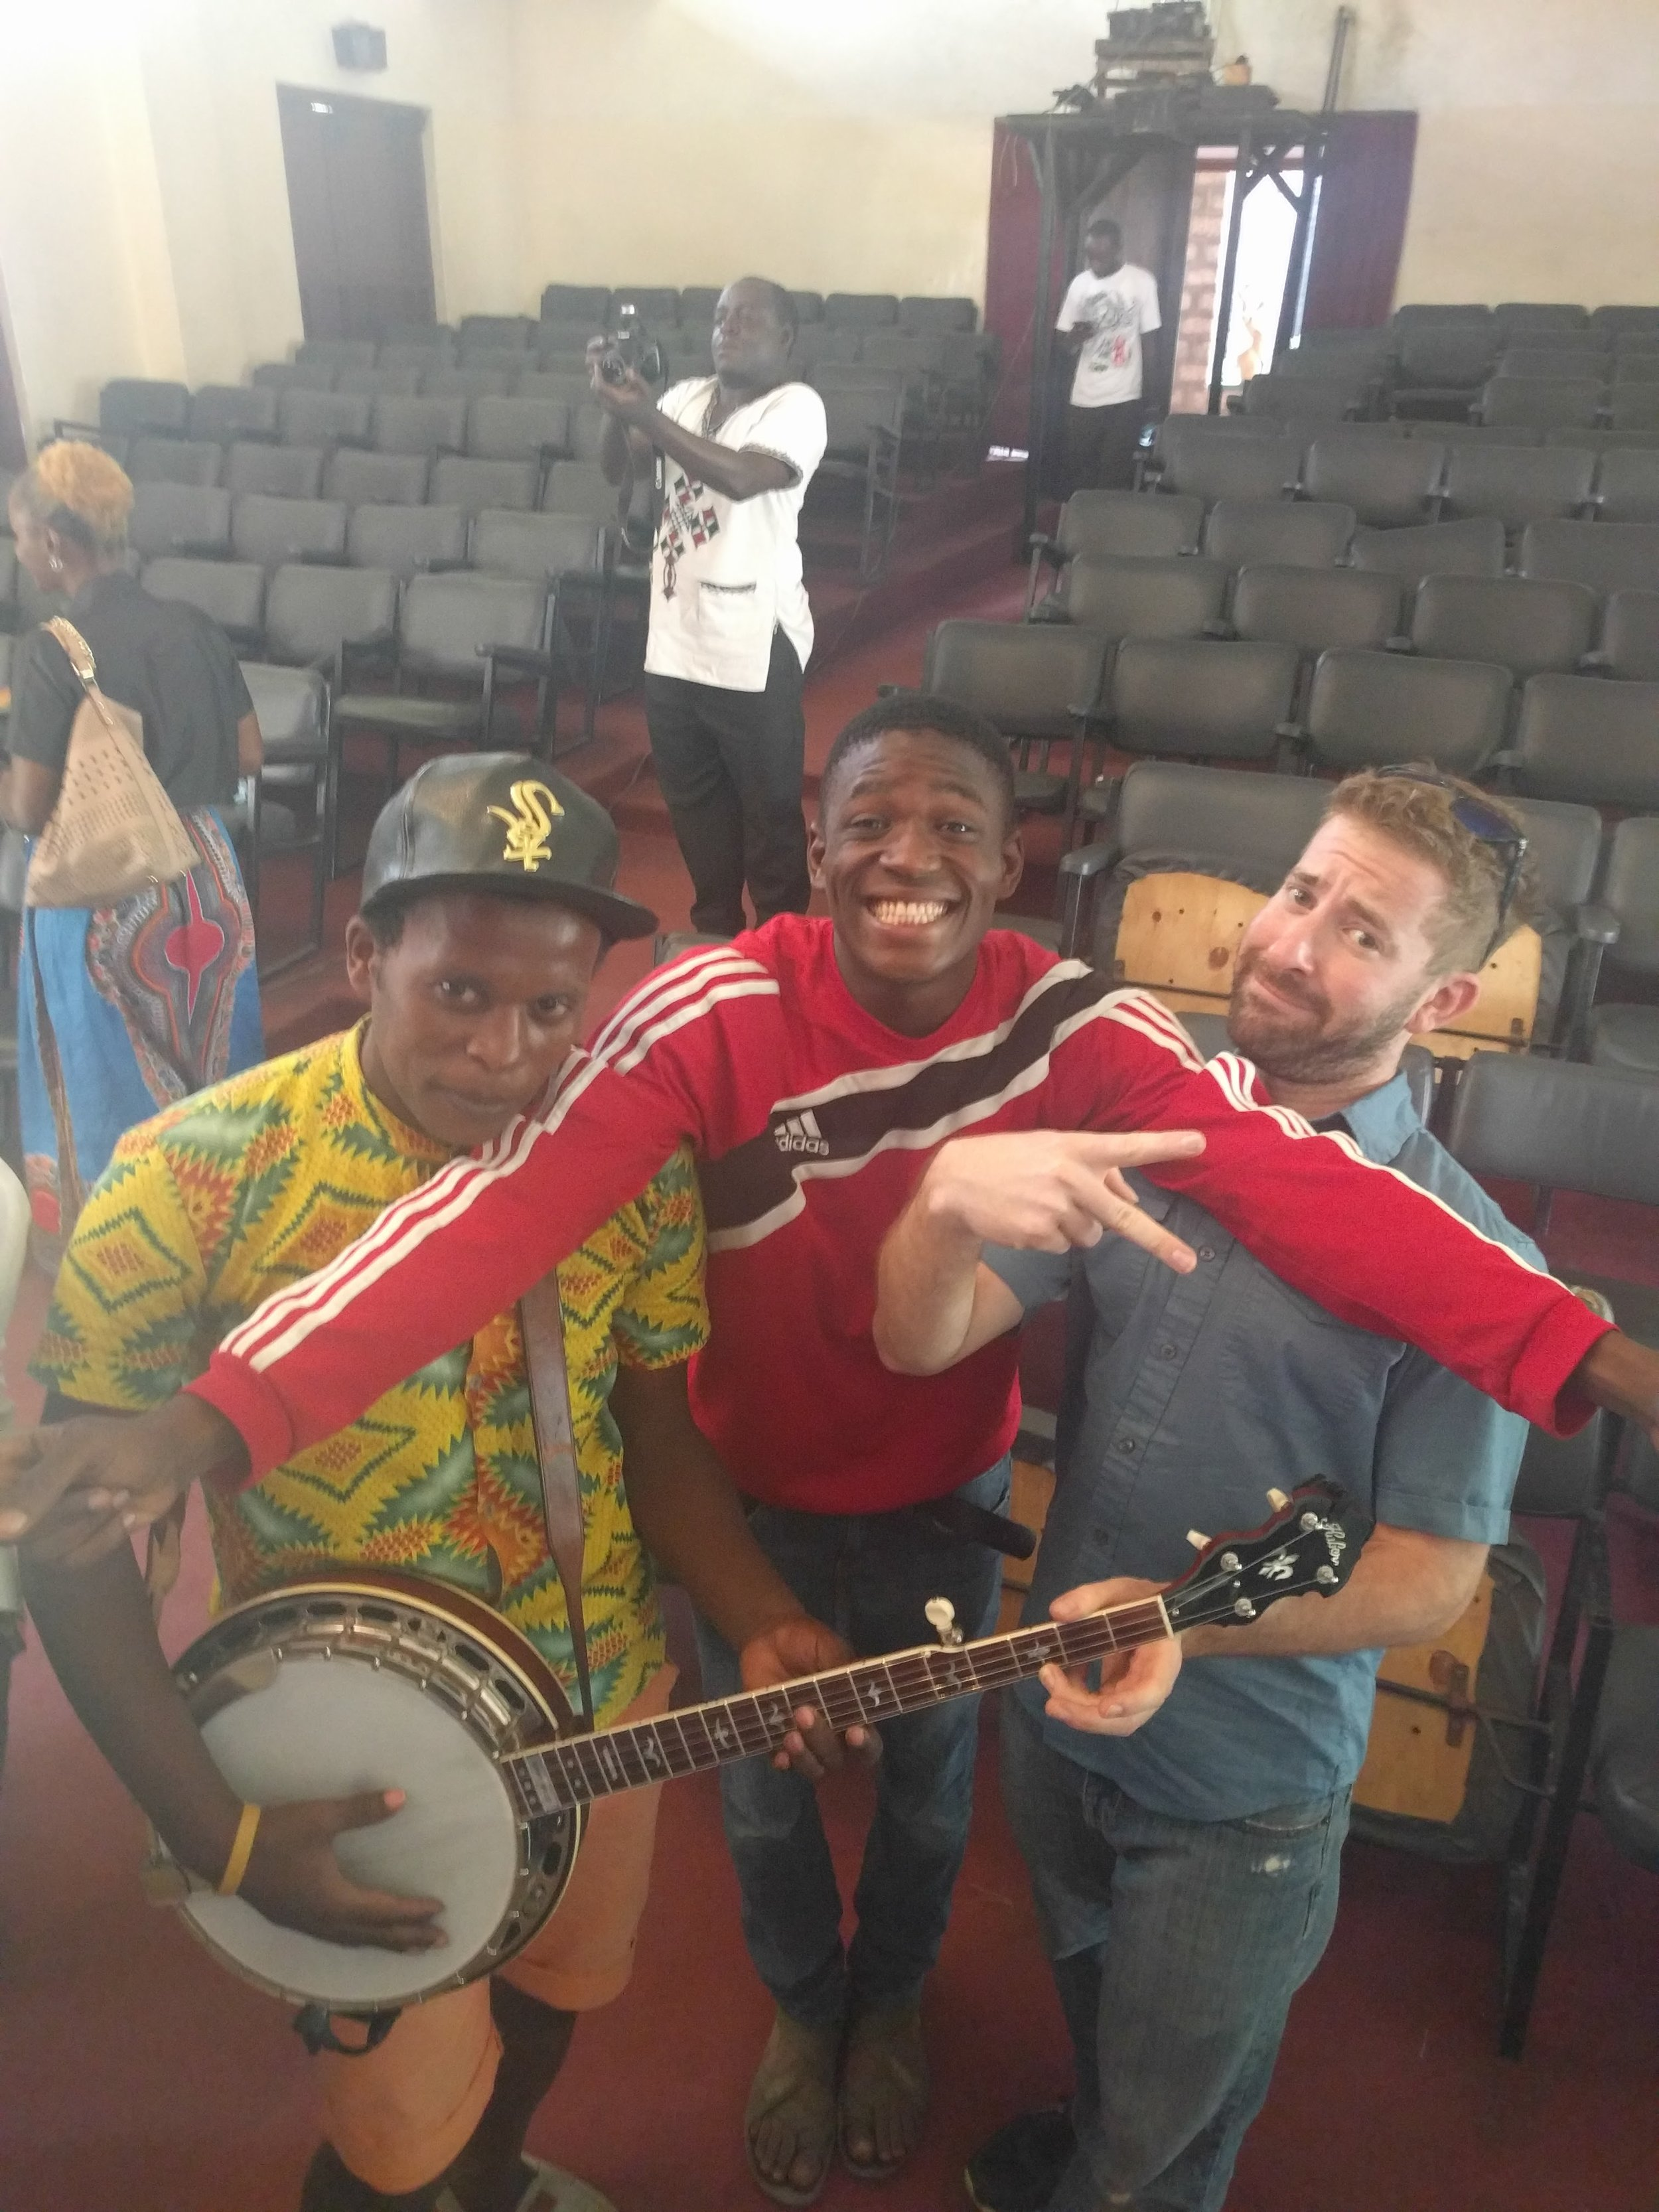 The banjo gets a lot of attention in much of Africa because it's almost never seen. There's some serious irony in that statement, since its roots couldn't be more firmly planted there.